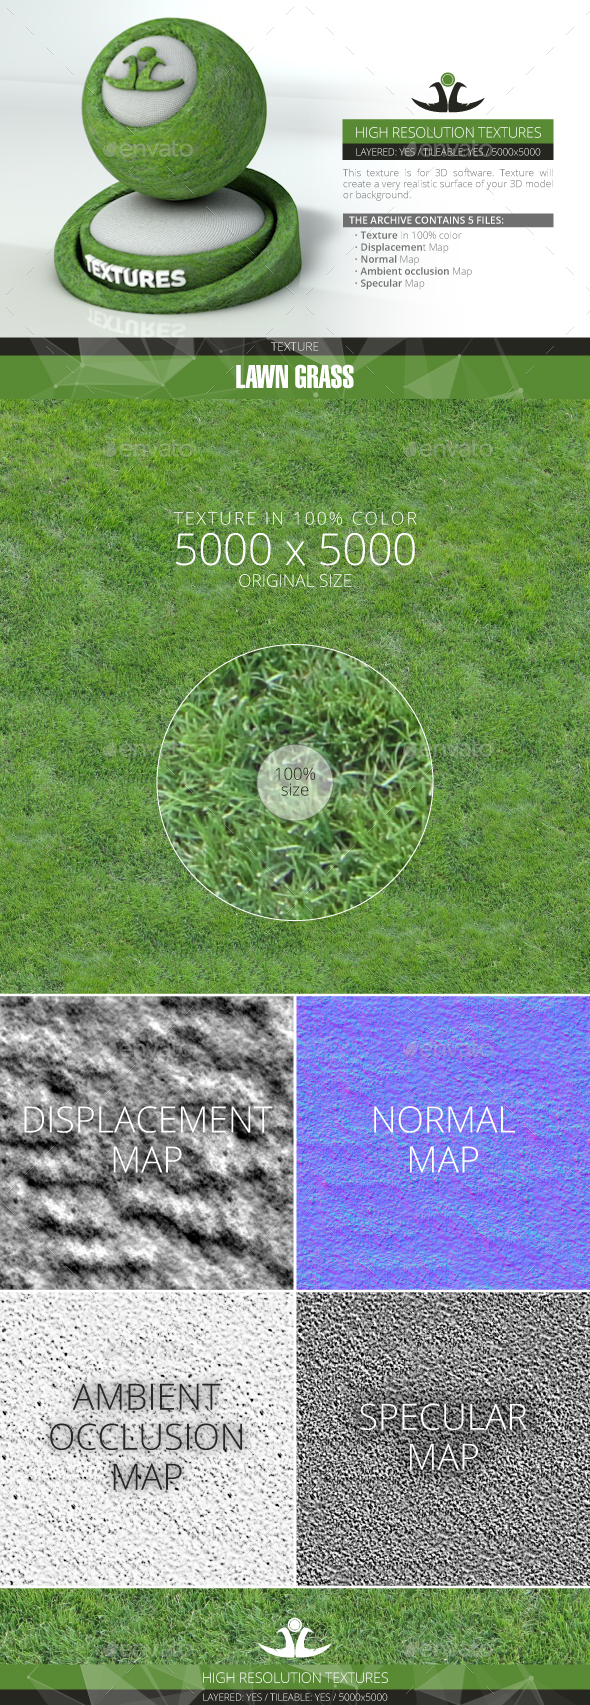 Lawn Grass 2 - 3DOcean Item for Sale